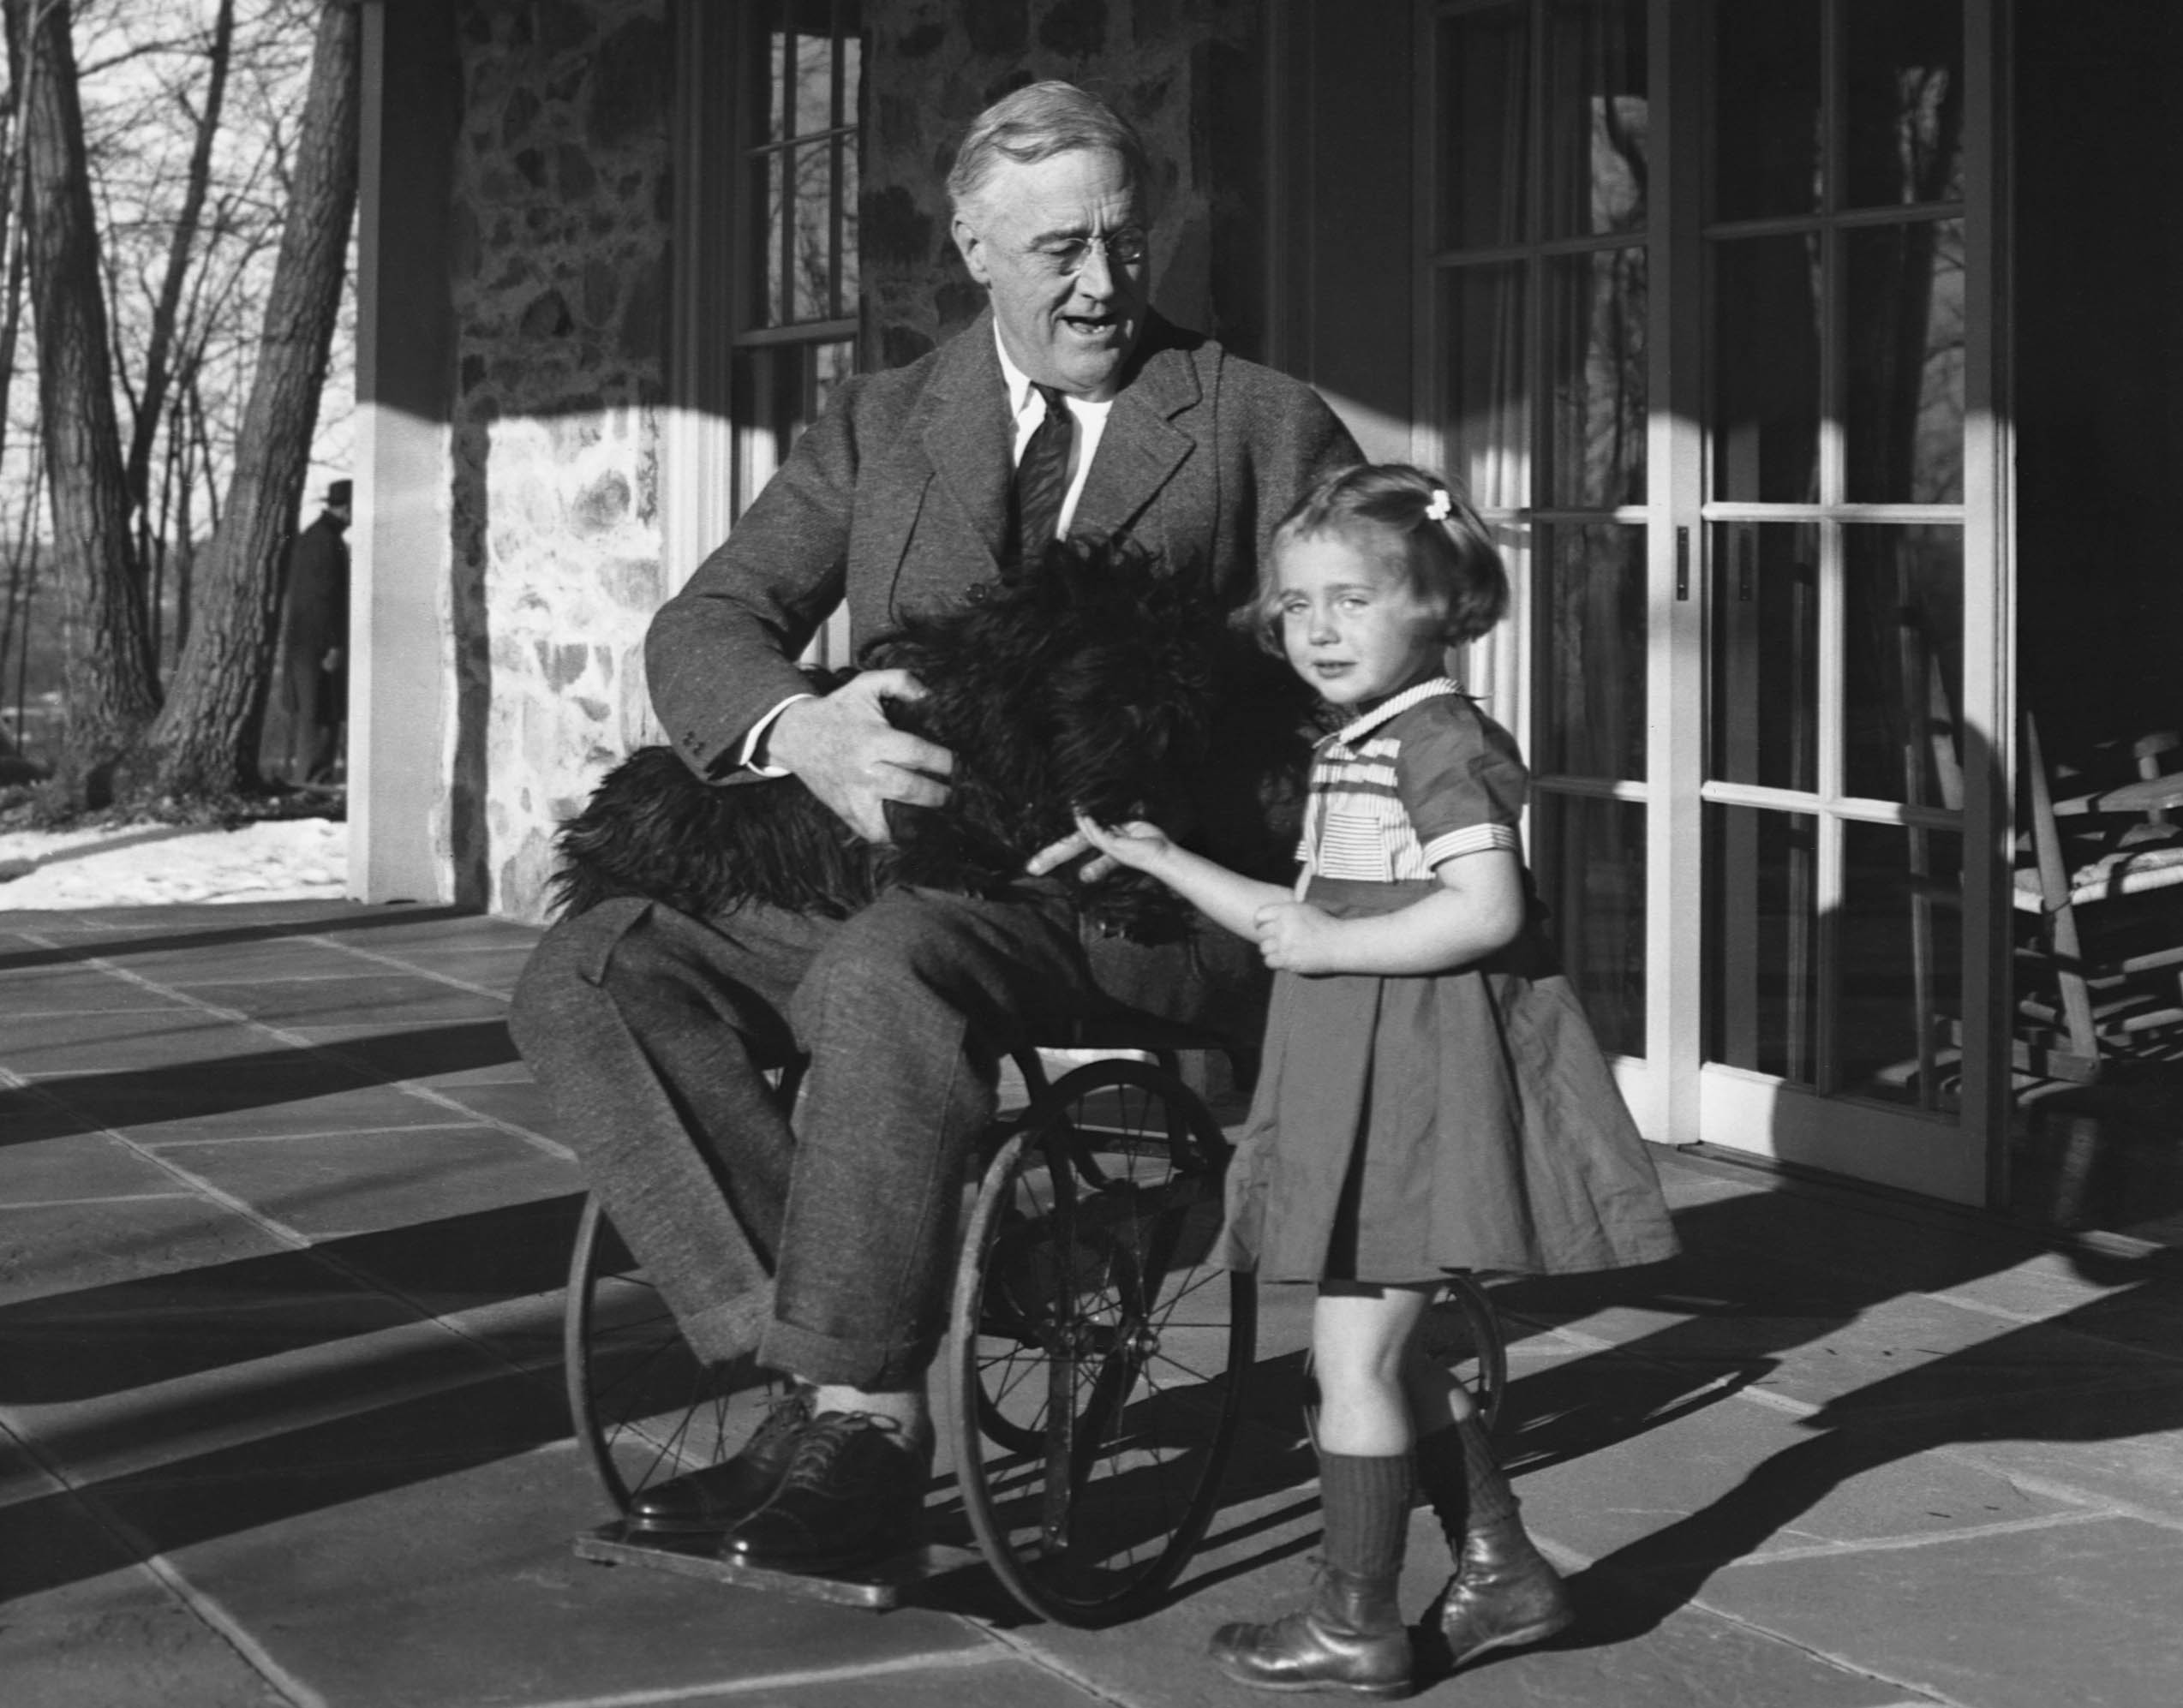 Franklin Roosevelt in his wheelchair with his dog and Ruthie Bie, the daughter of the Hyde Park caretaker. (Credit: Corbis via Getty Images)